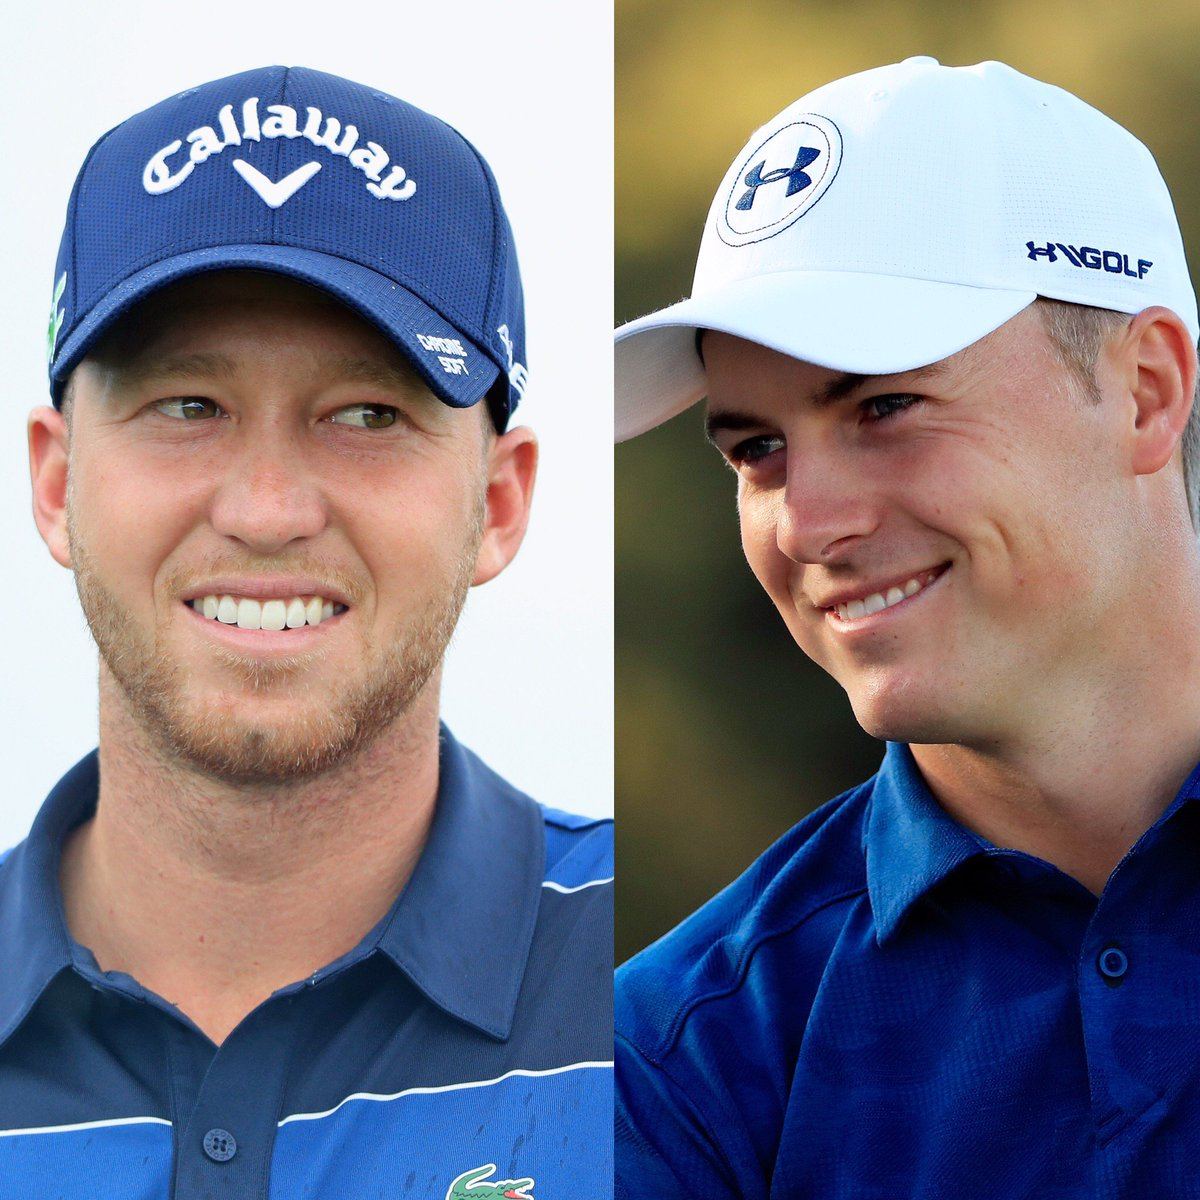 Daniel Berger vs. Jordan Spieth for the @TravelersChamp!  Playoff hole...